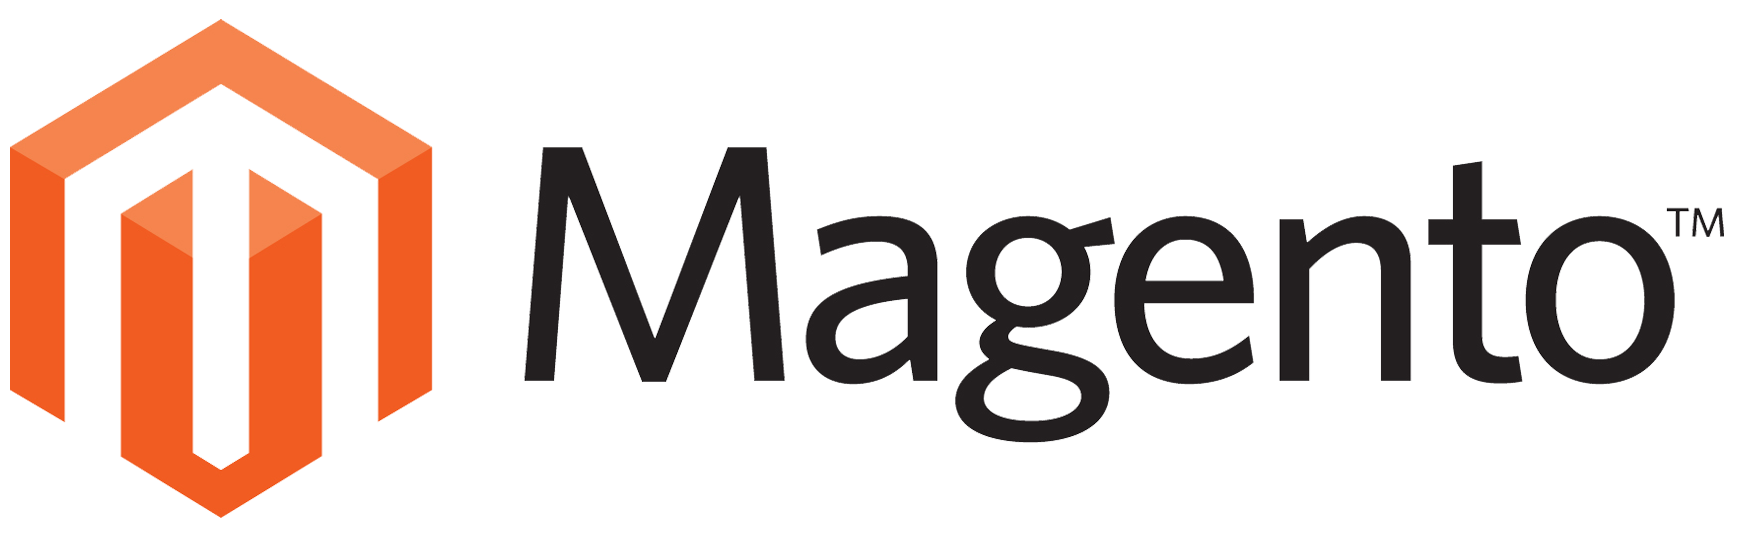 magento_large.png